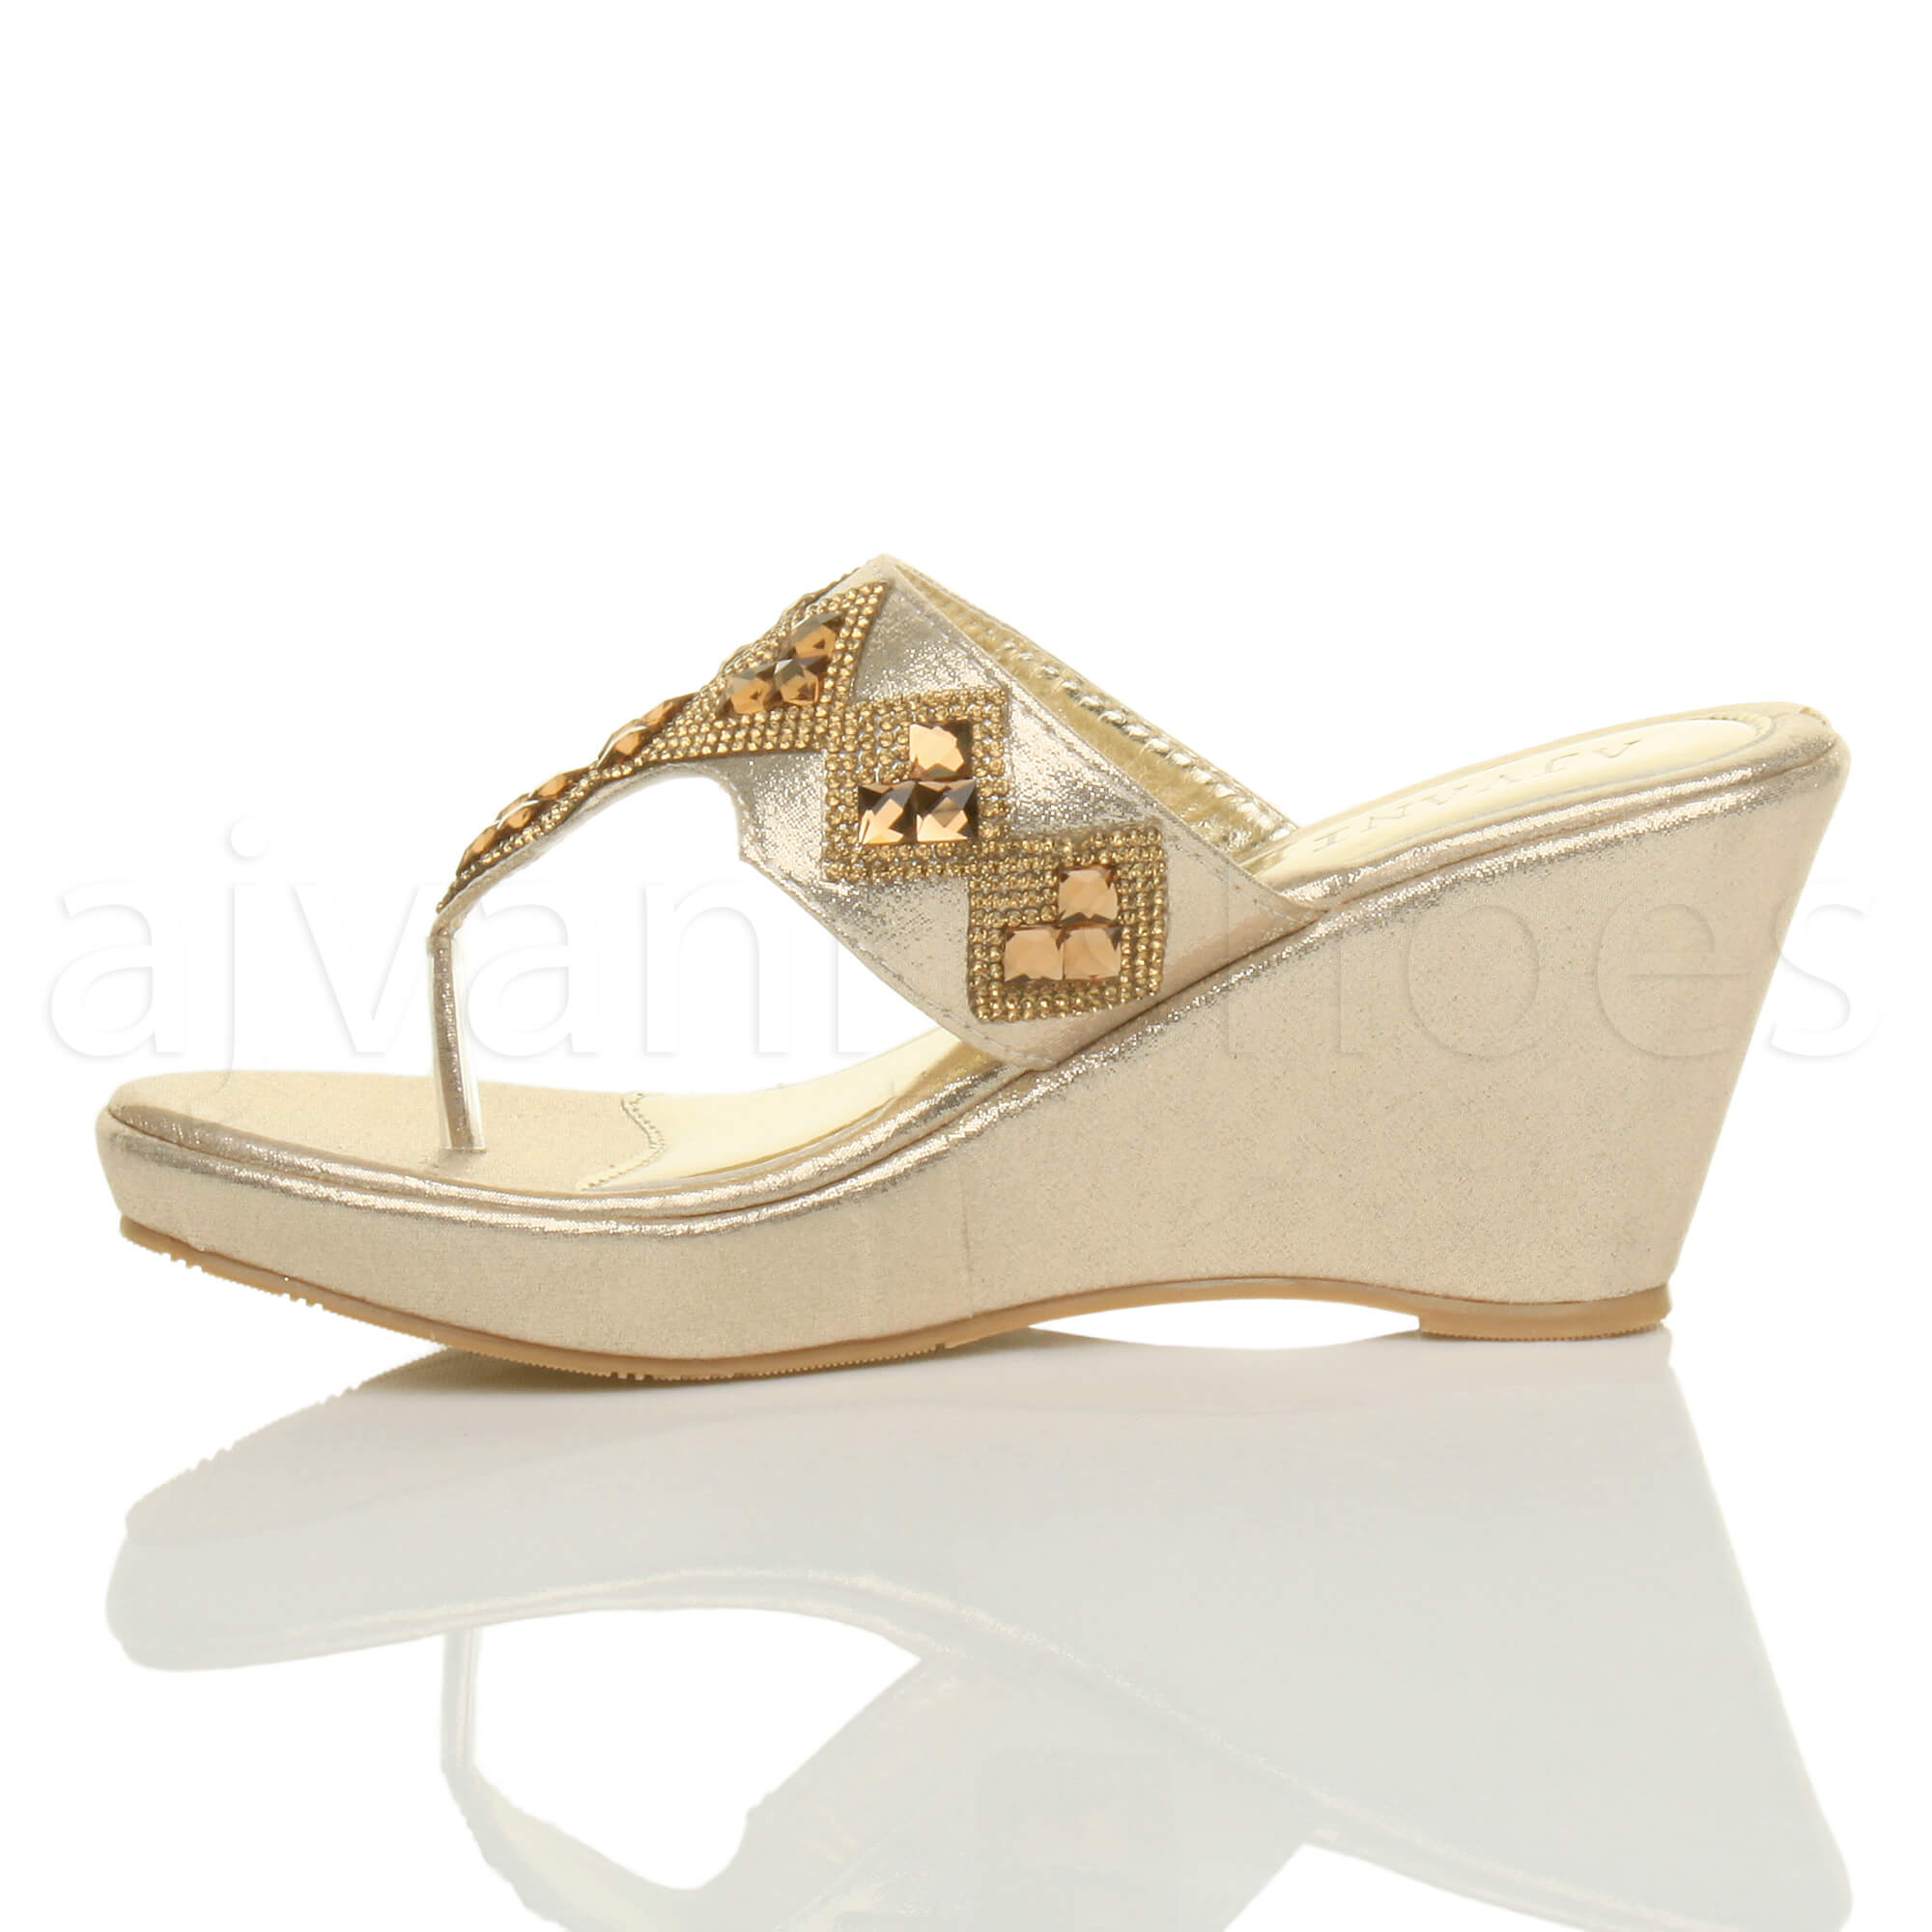 WOMENS-LADIES-HIGH-WEDGE-T-BAR-TOE-POST-DIAMANTE-PLATFORM-MULES-SANDALS-SIZE thumbnail 4